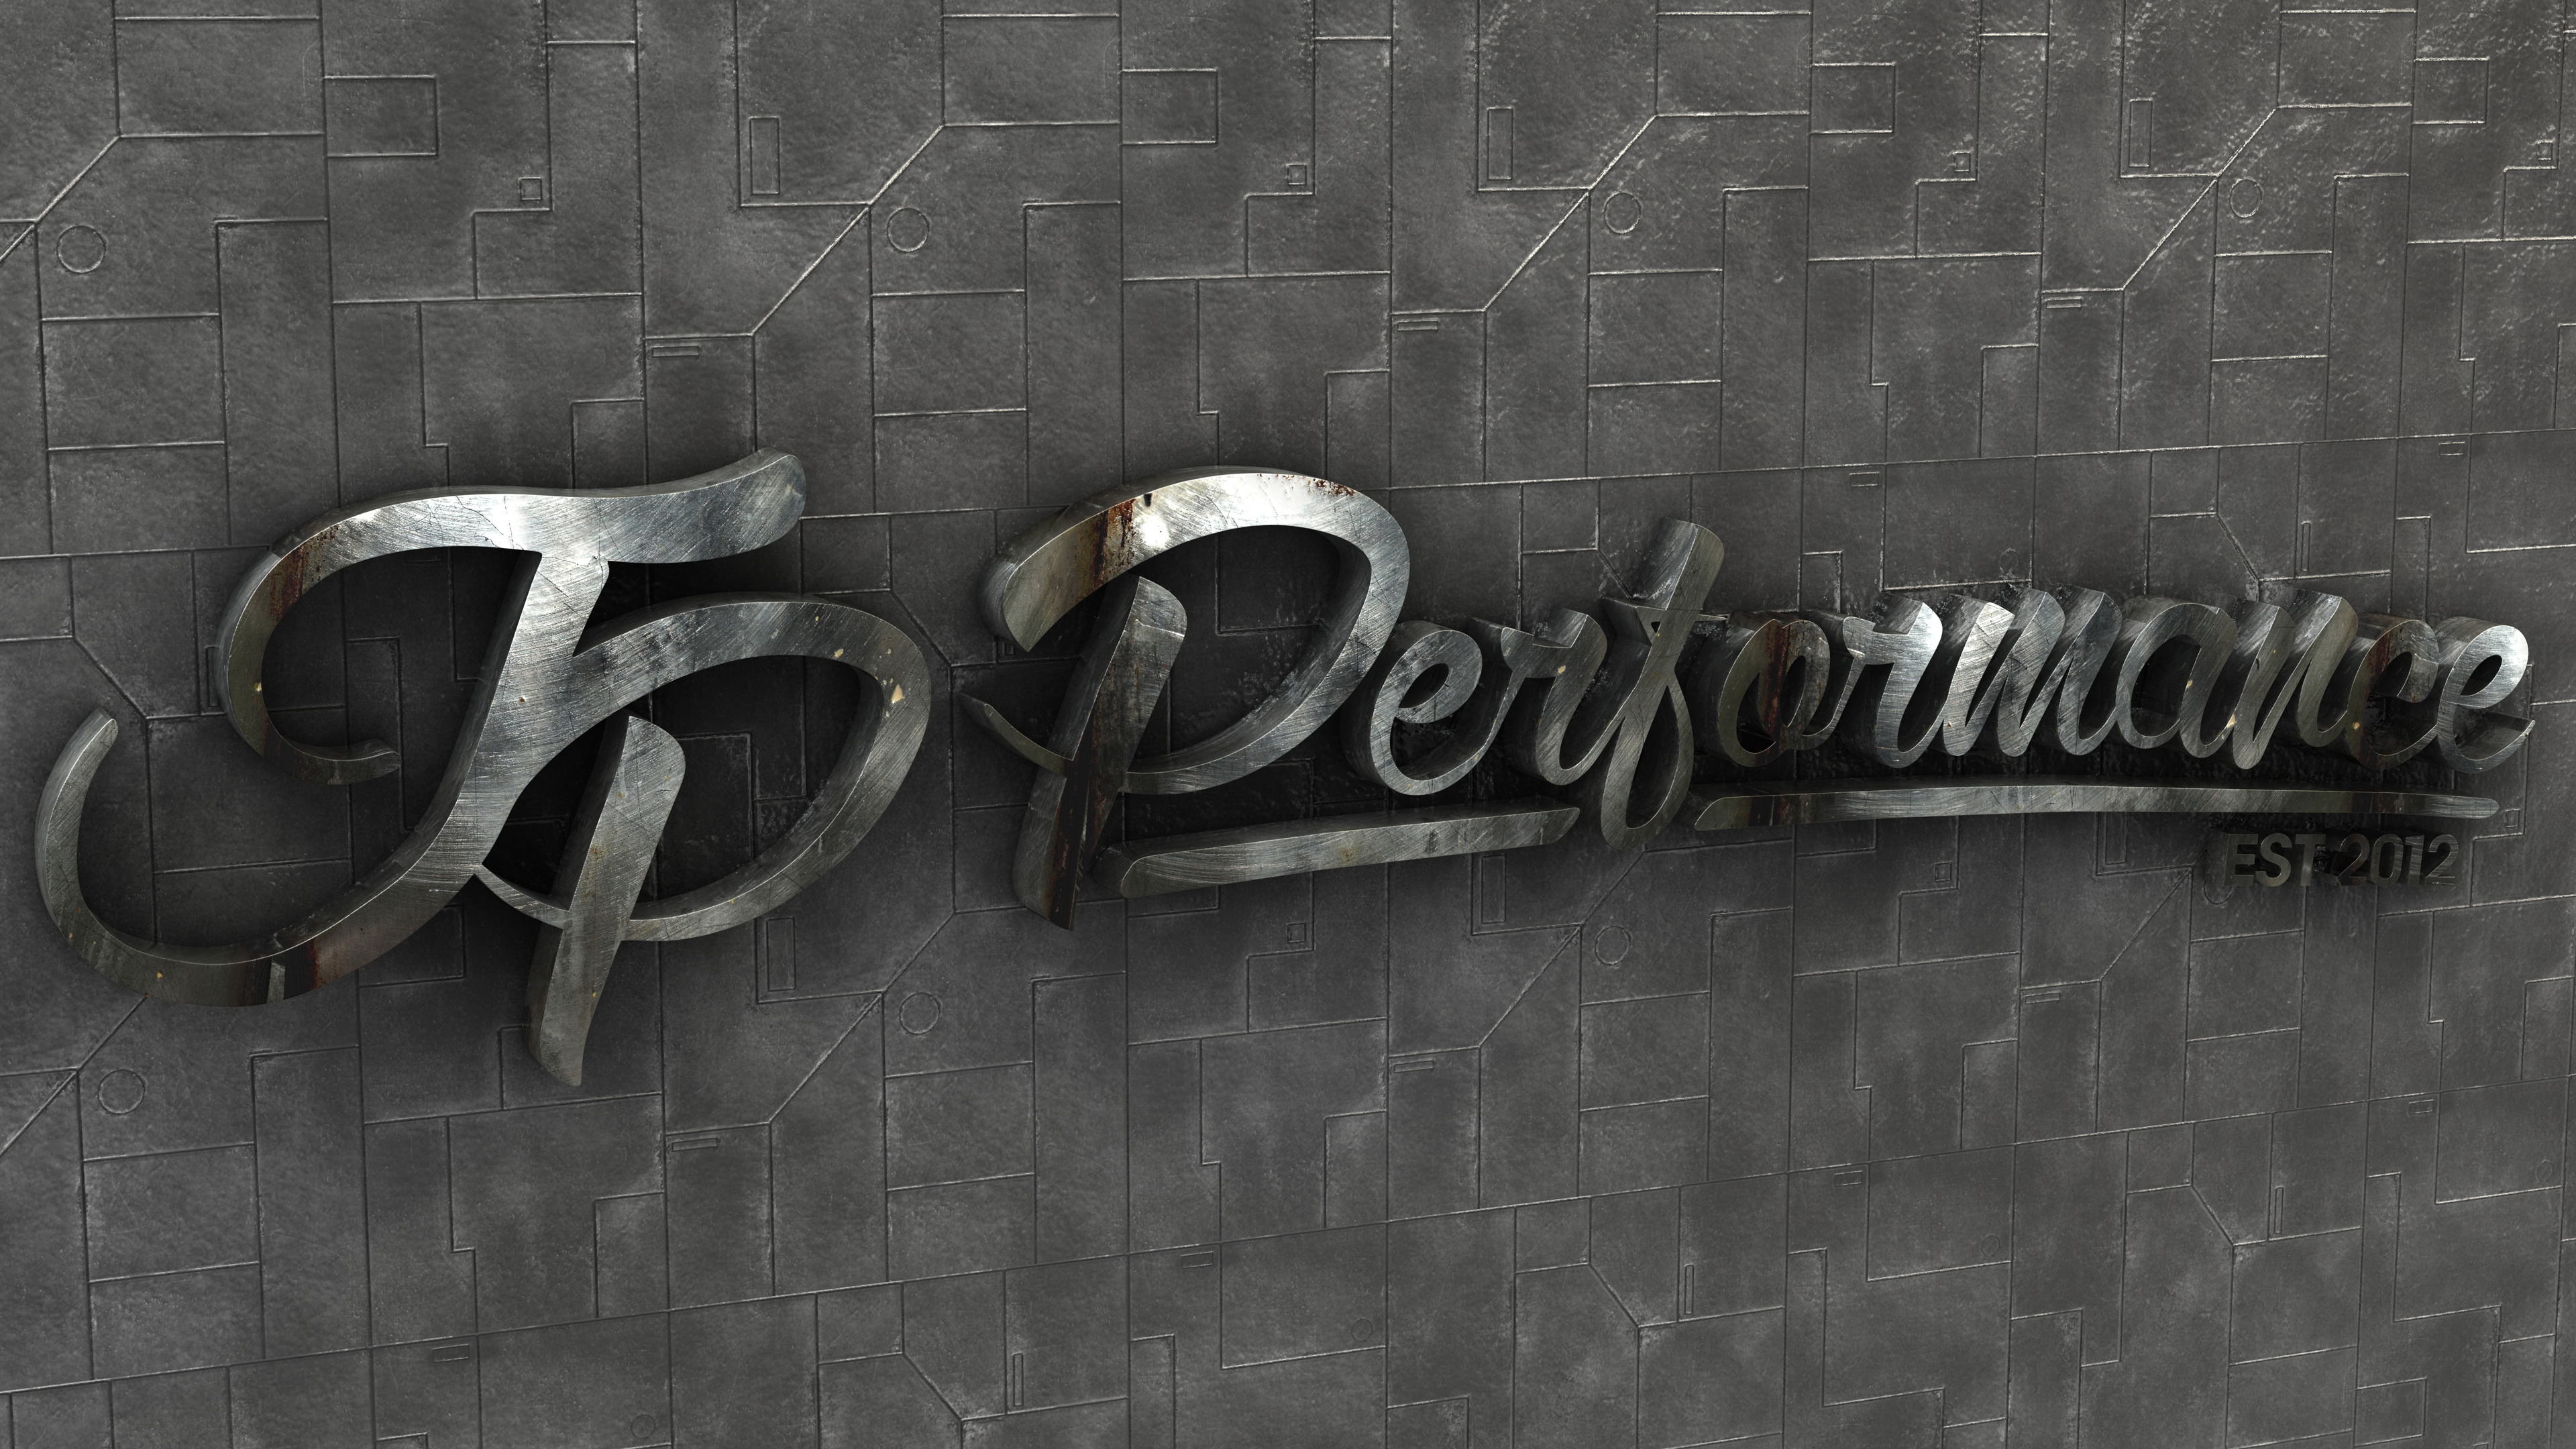 jp performance industrial logo by dracu teufel666 on. Black Bedroom Furniture Sets. Home Design Ideas